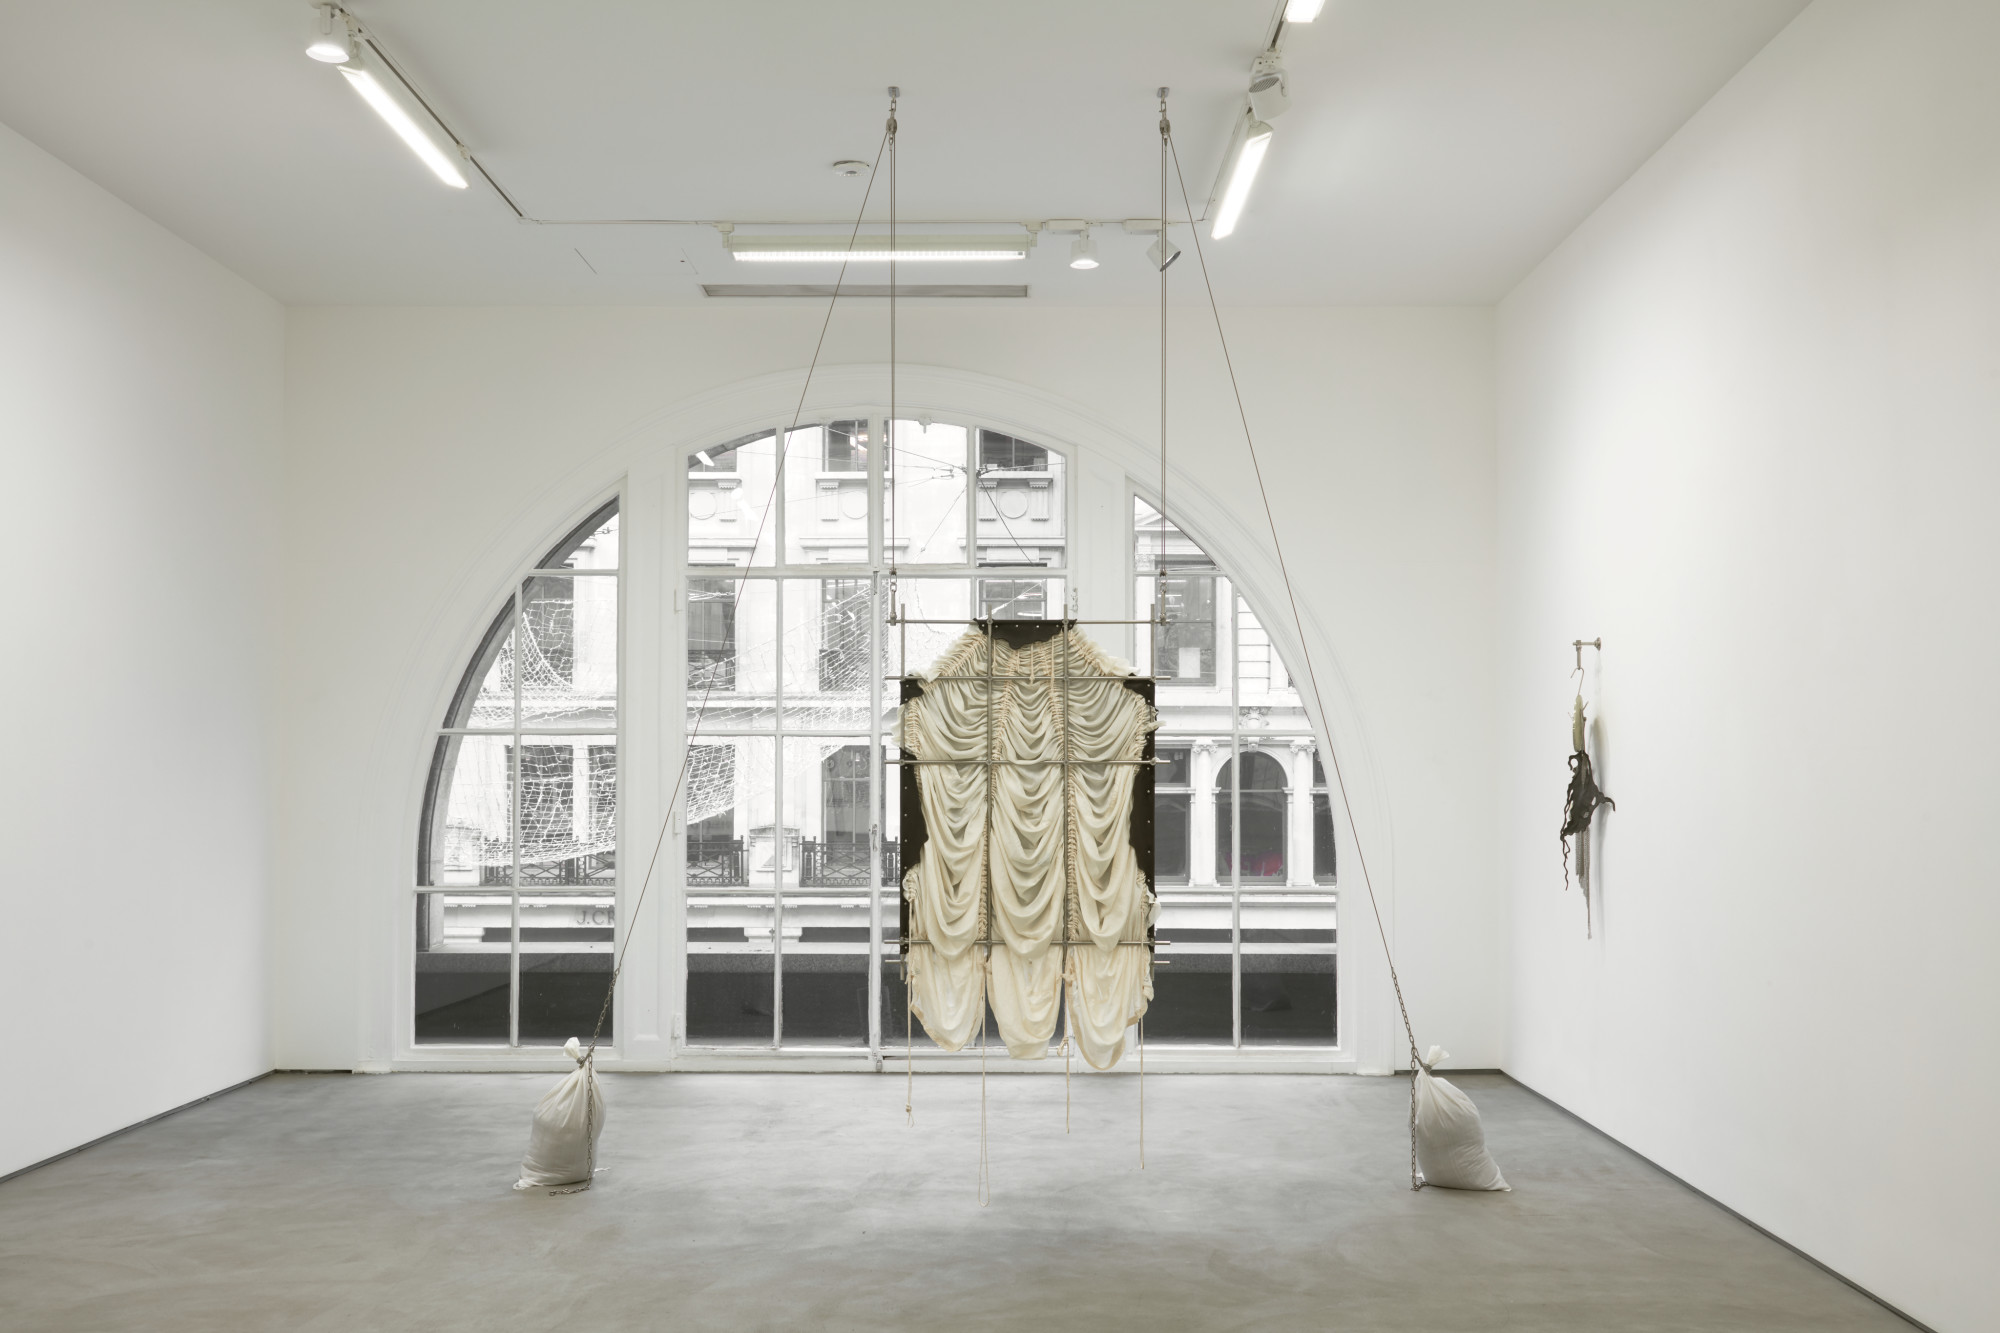 <p>Installation view, JTT, Elaine Cameron-Weir, 62 Kingly Street, 2019<br />Photo by Robert Glowacki</p>